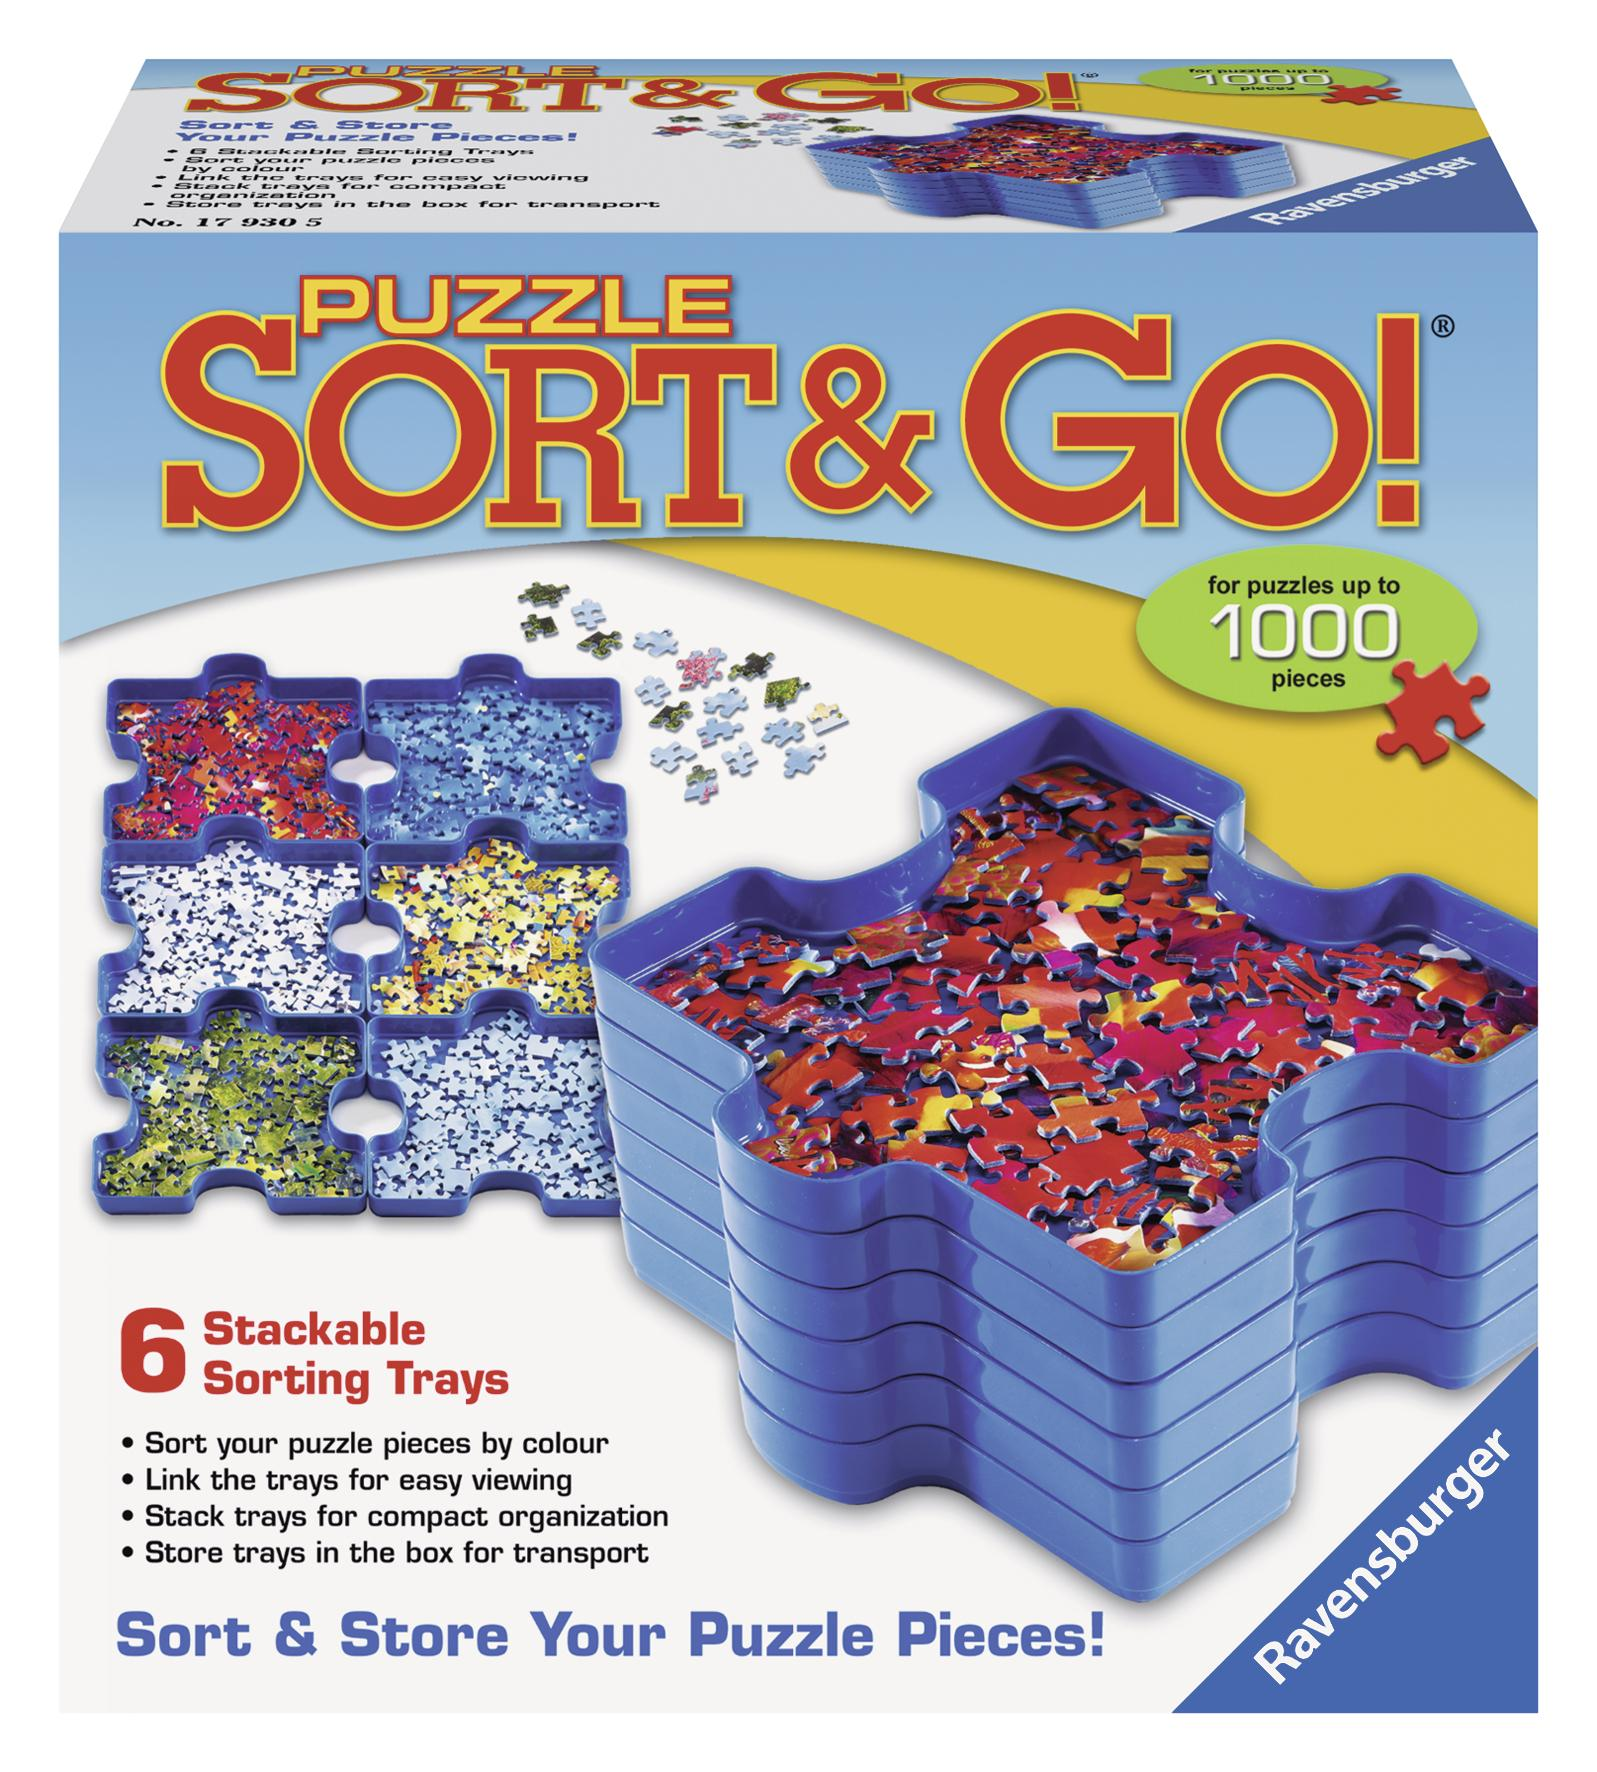 Puzzle-Sort & Go (Other) by Ravensburger USA Inc